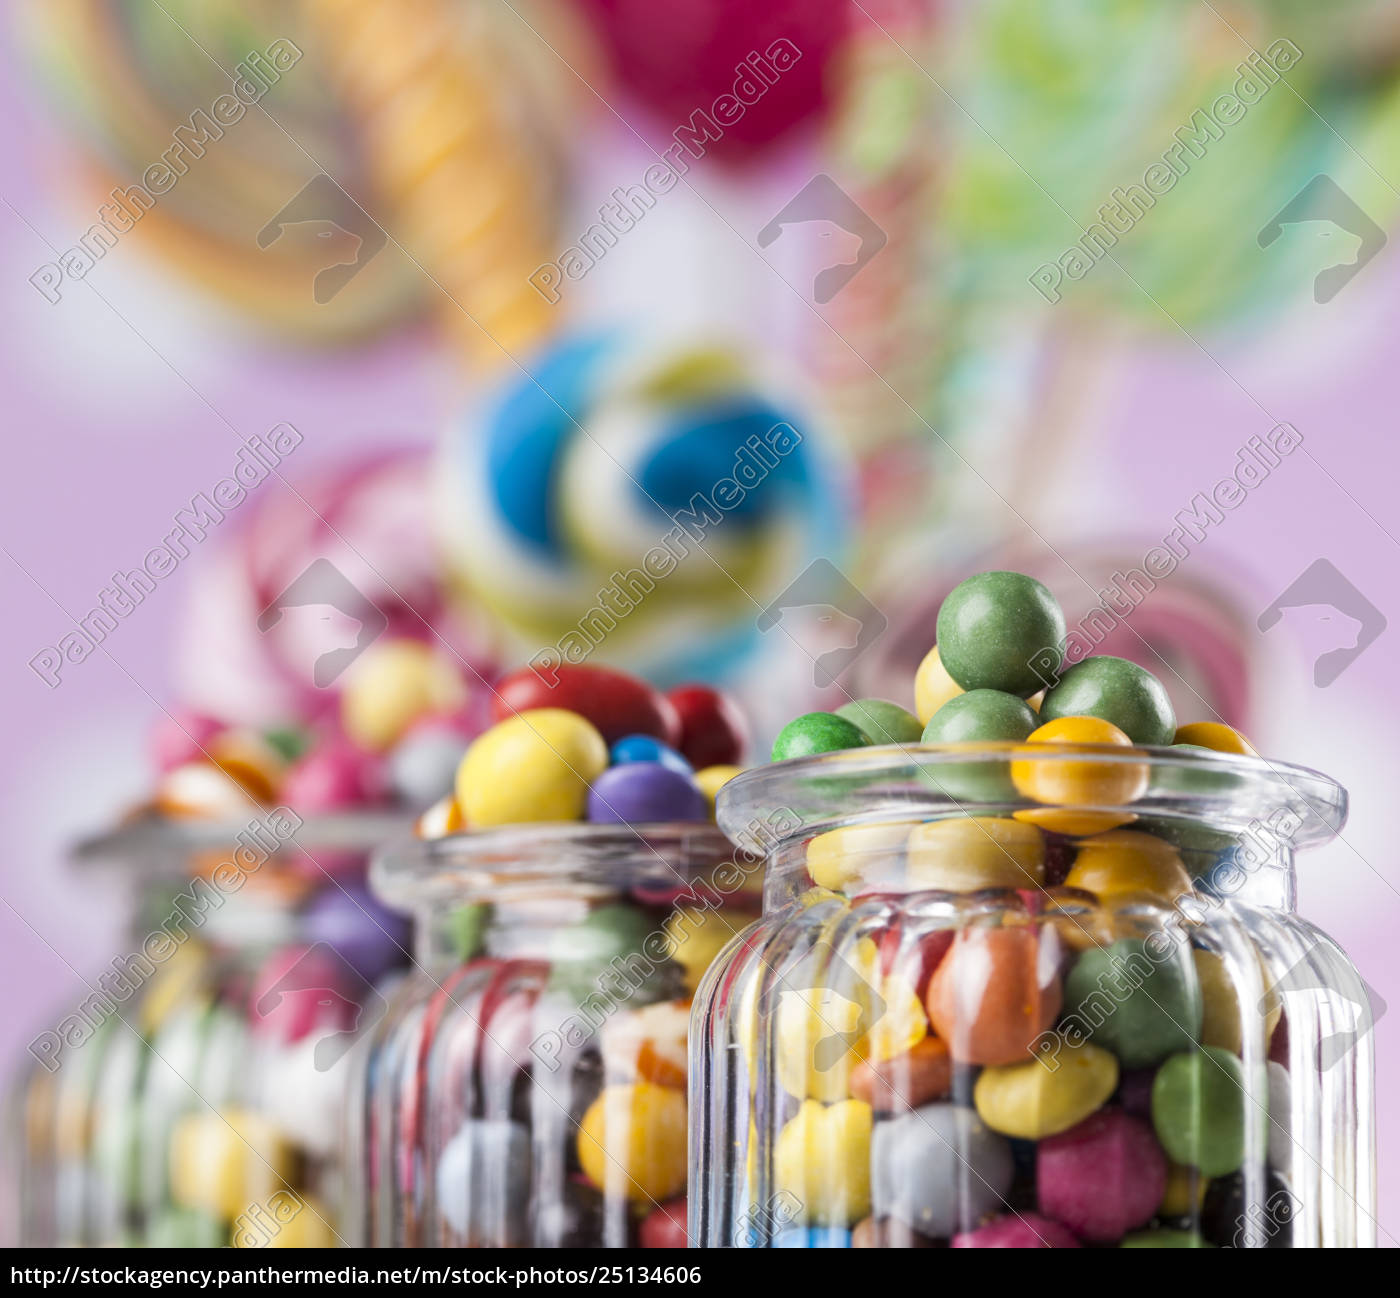 colorful, lollipops, and, different, colored, round - 25134606